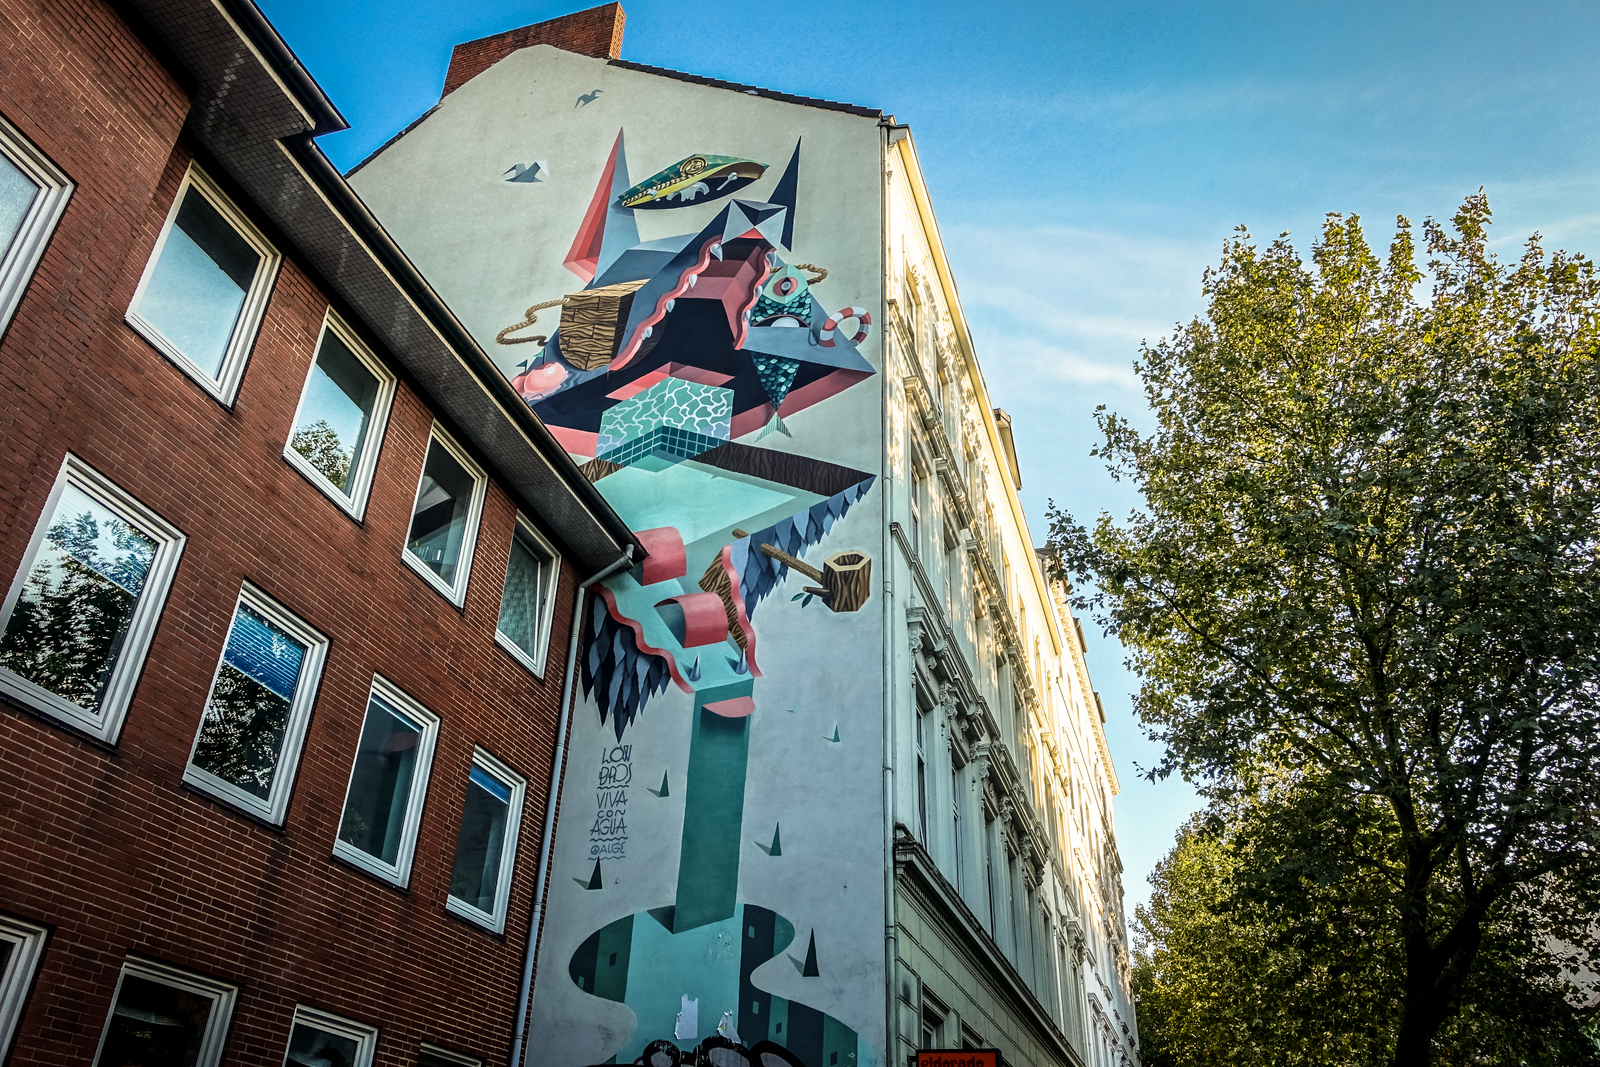 streetart in hamburg st pauli, sept 2015